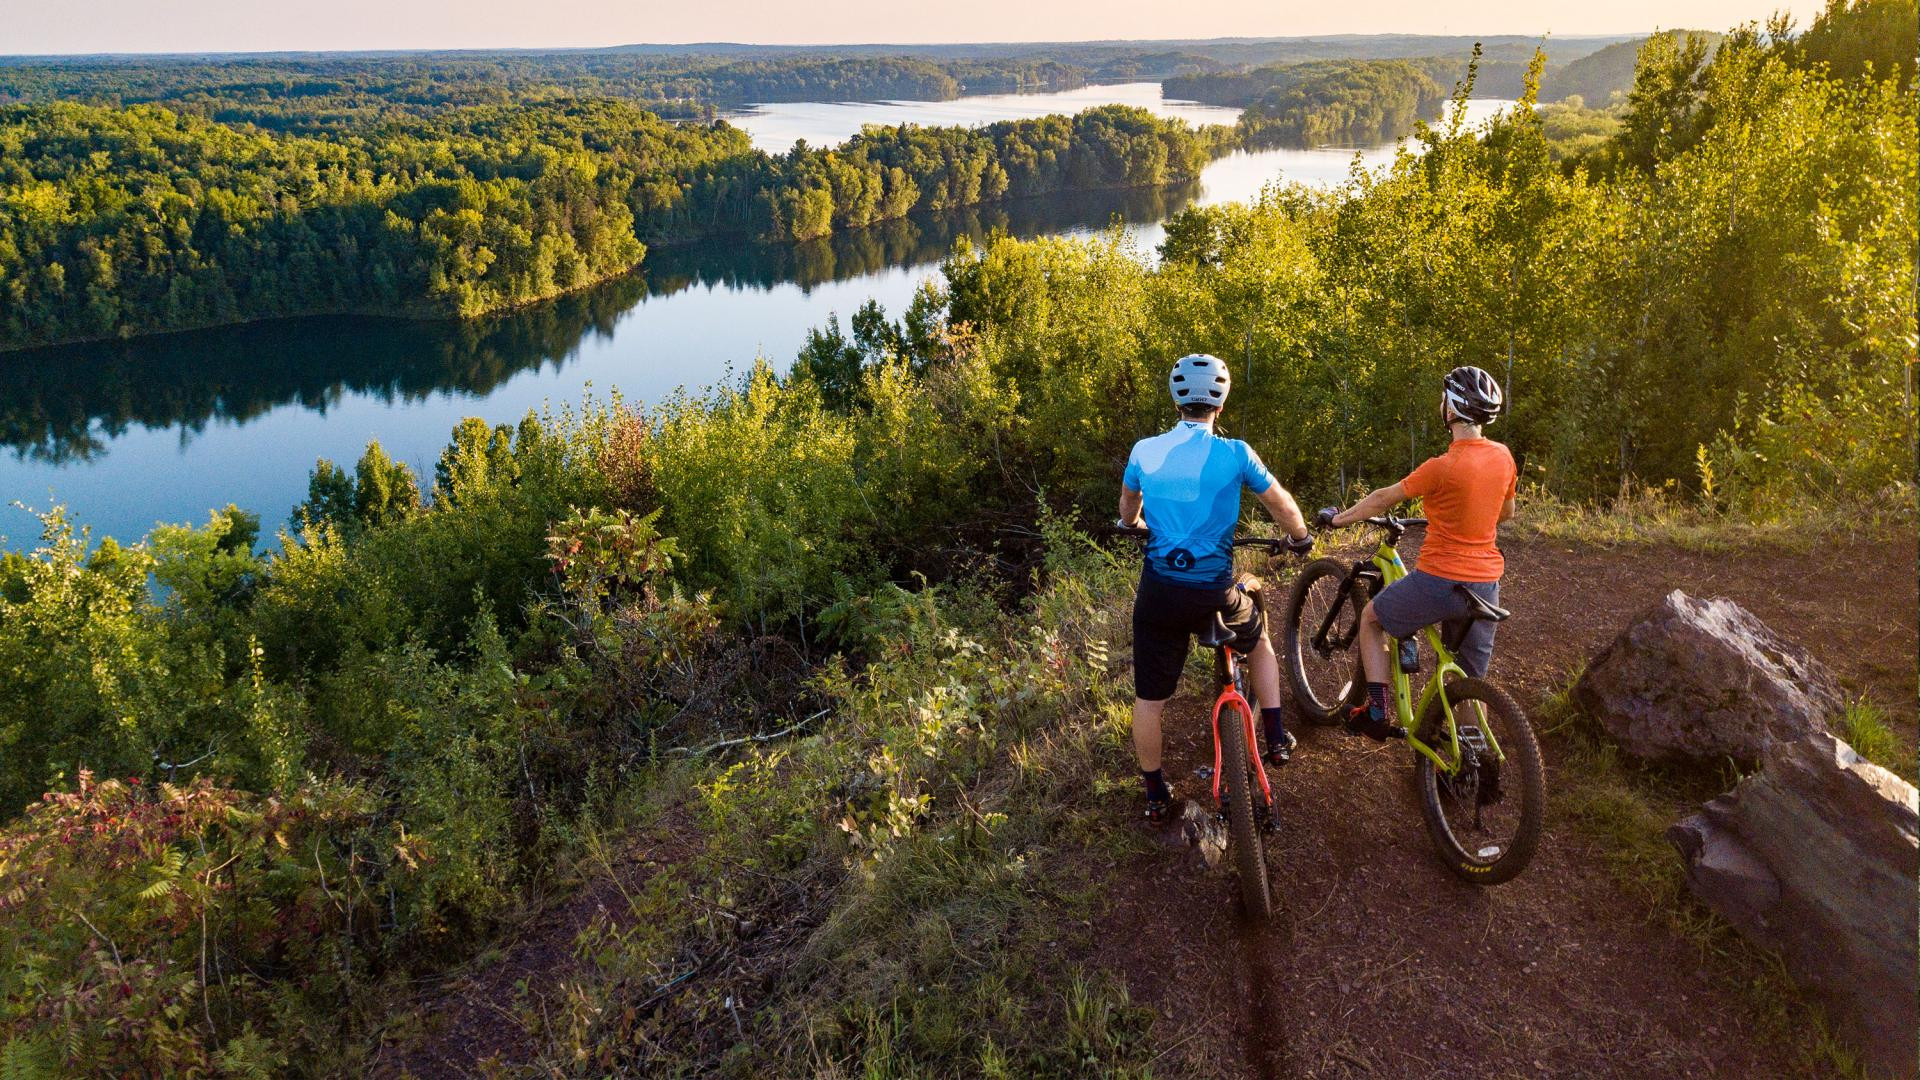 Ironton Cuyuna couple biking